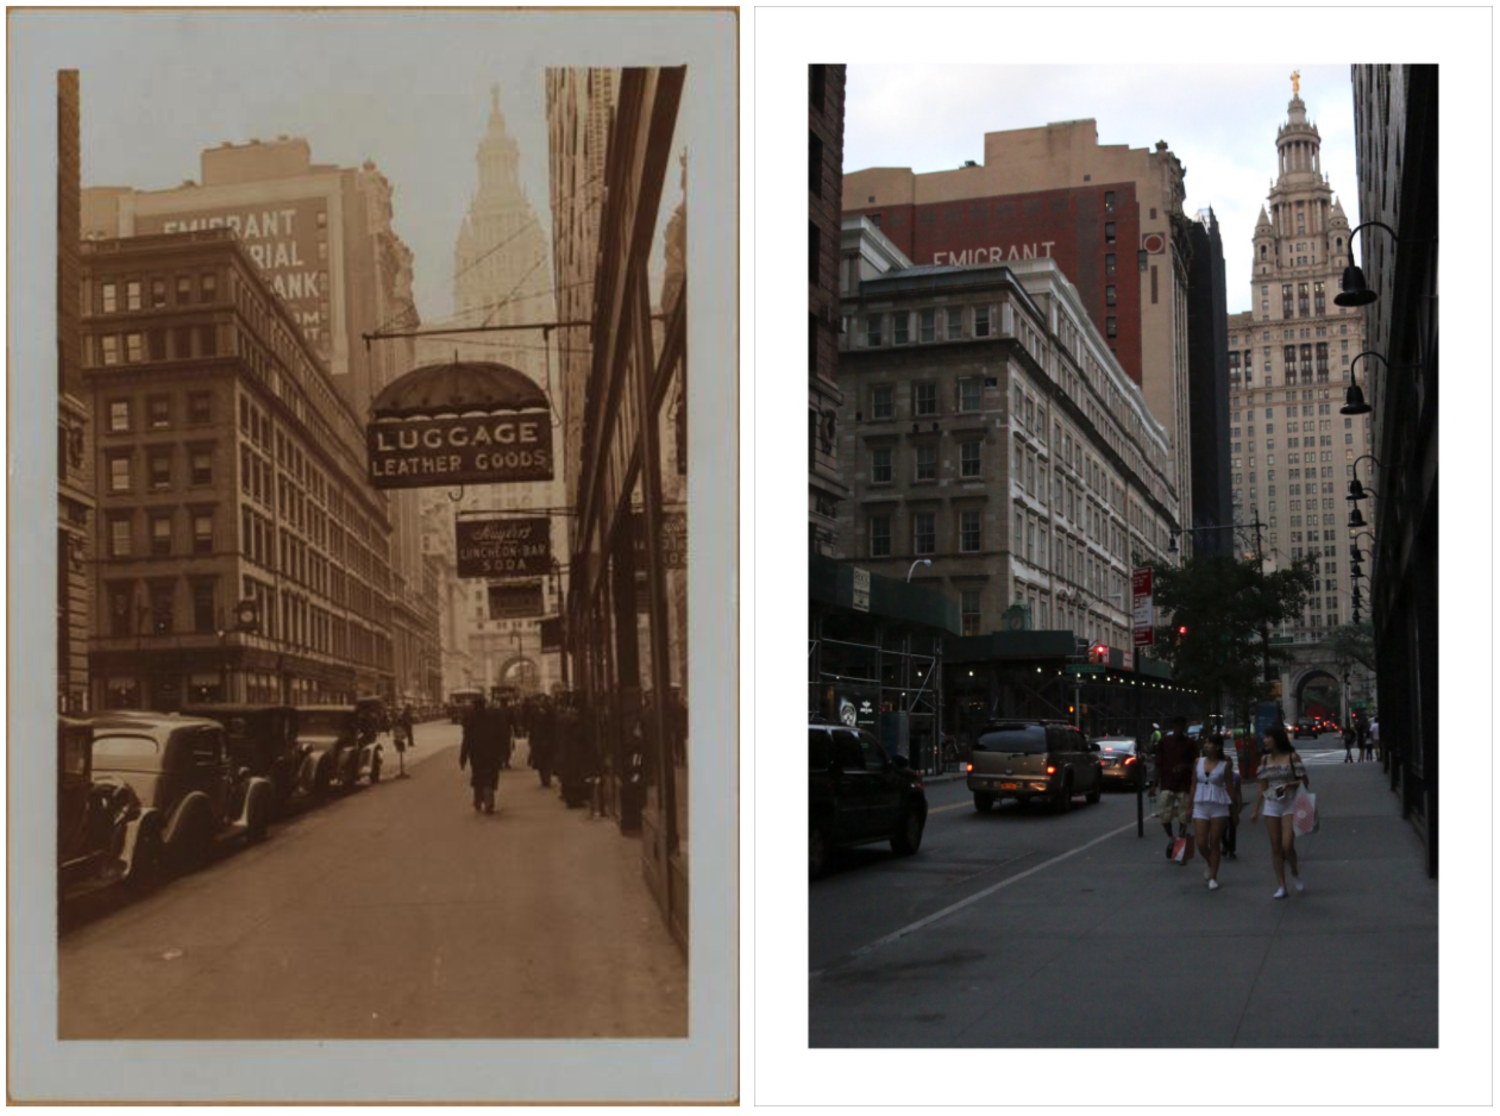 Chambers street, north side, facing east towards and including Broadway and Centre street (P.L. Sperr, 1936). November 6, 1936 // July 4, 2017